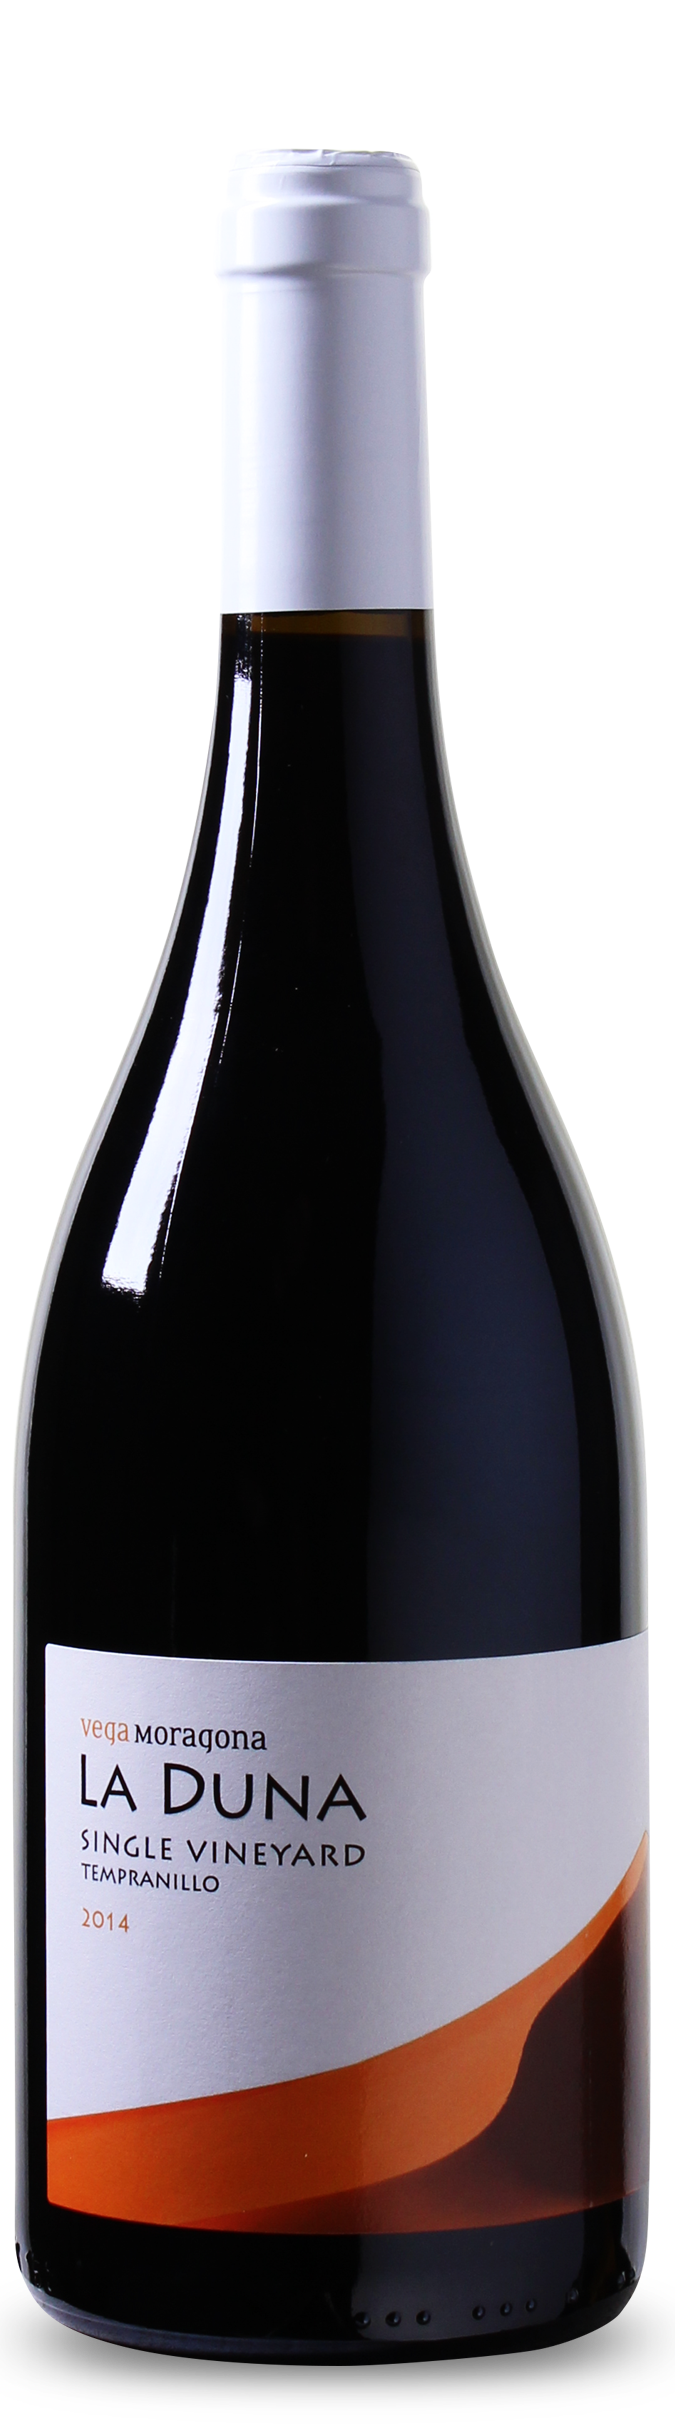 Bodegas Vega Moragona - La Duna Single Vineyard Tempranillo